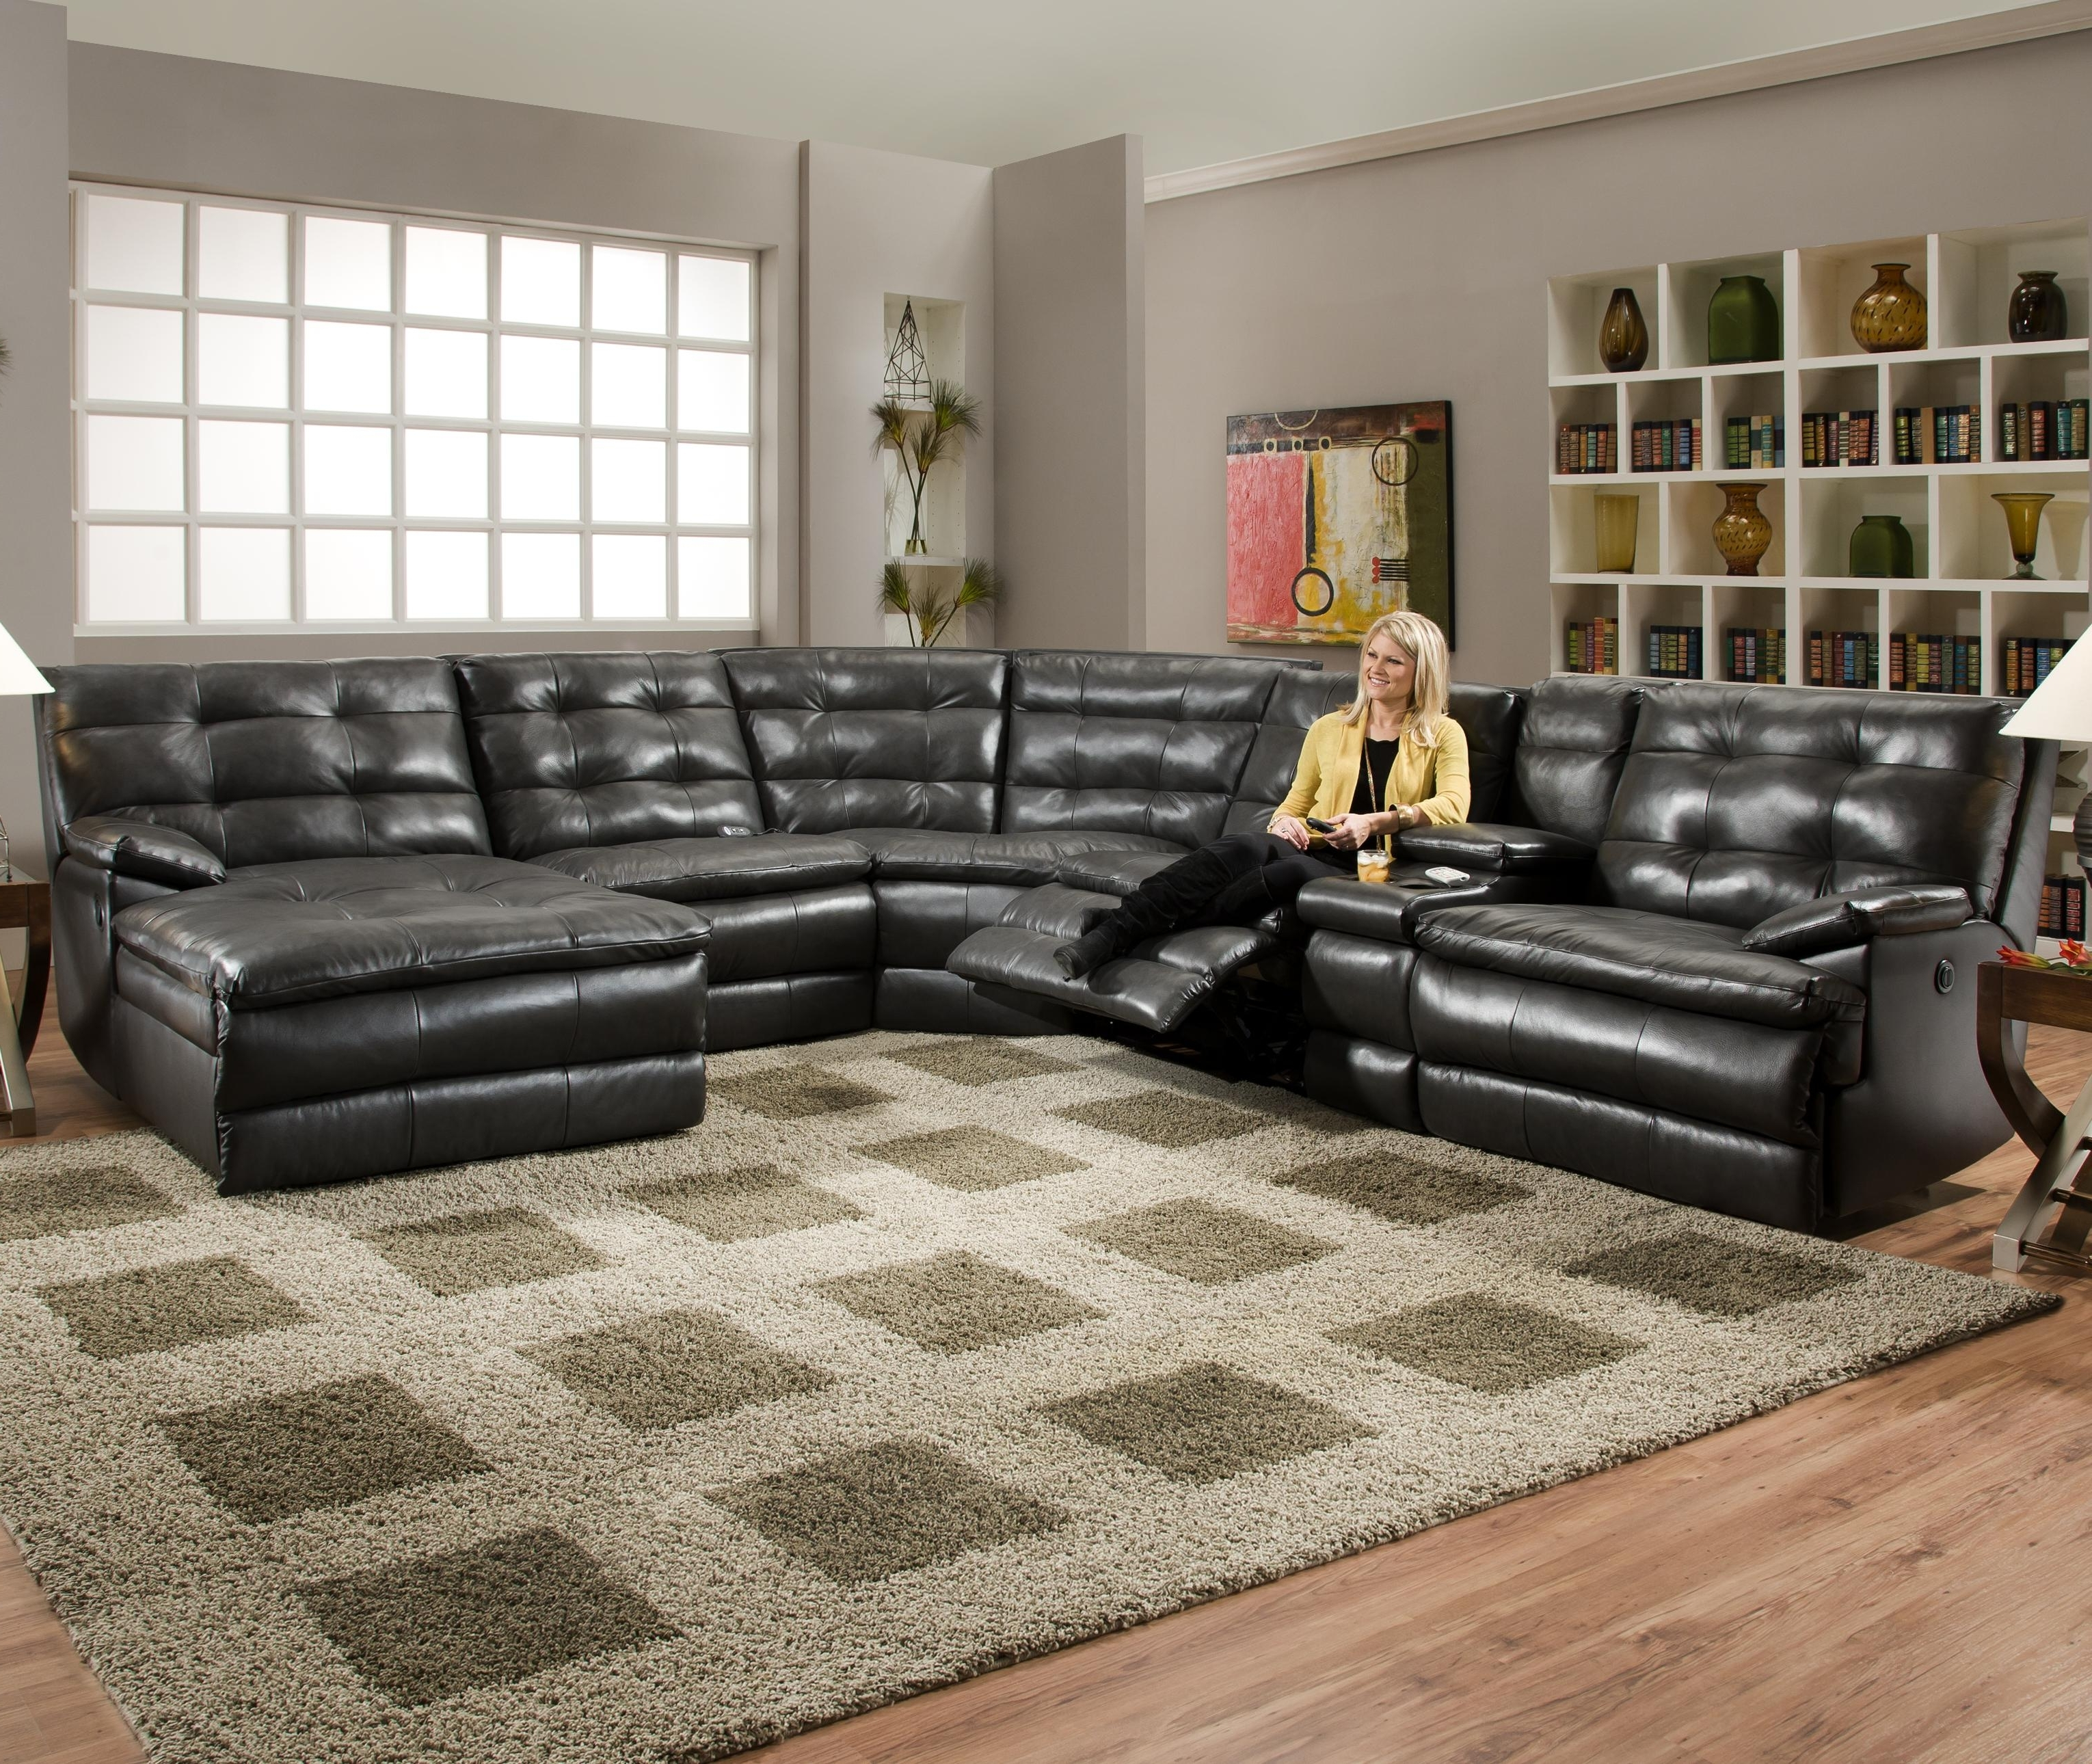 Well Known Sectional Sofa Design: Recliner Sectional Sofas Microfiber Throughout Sectional Sofas With Recliner And Chaise Lounge (View 14 of 15)